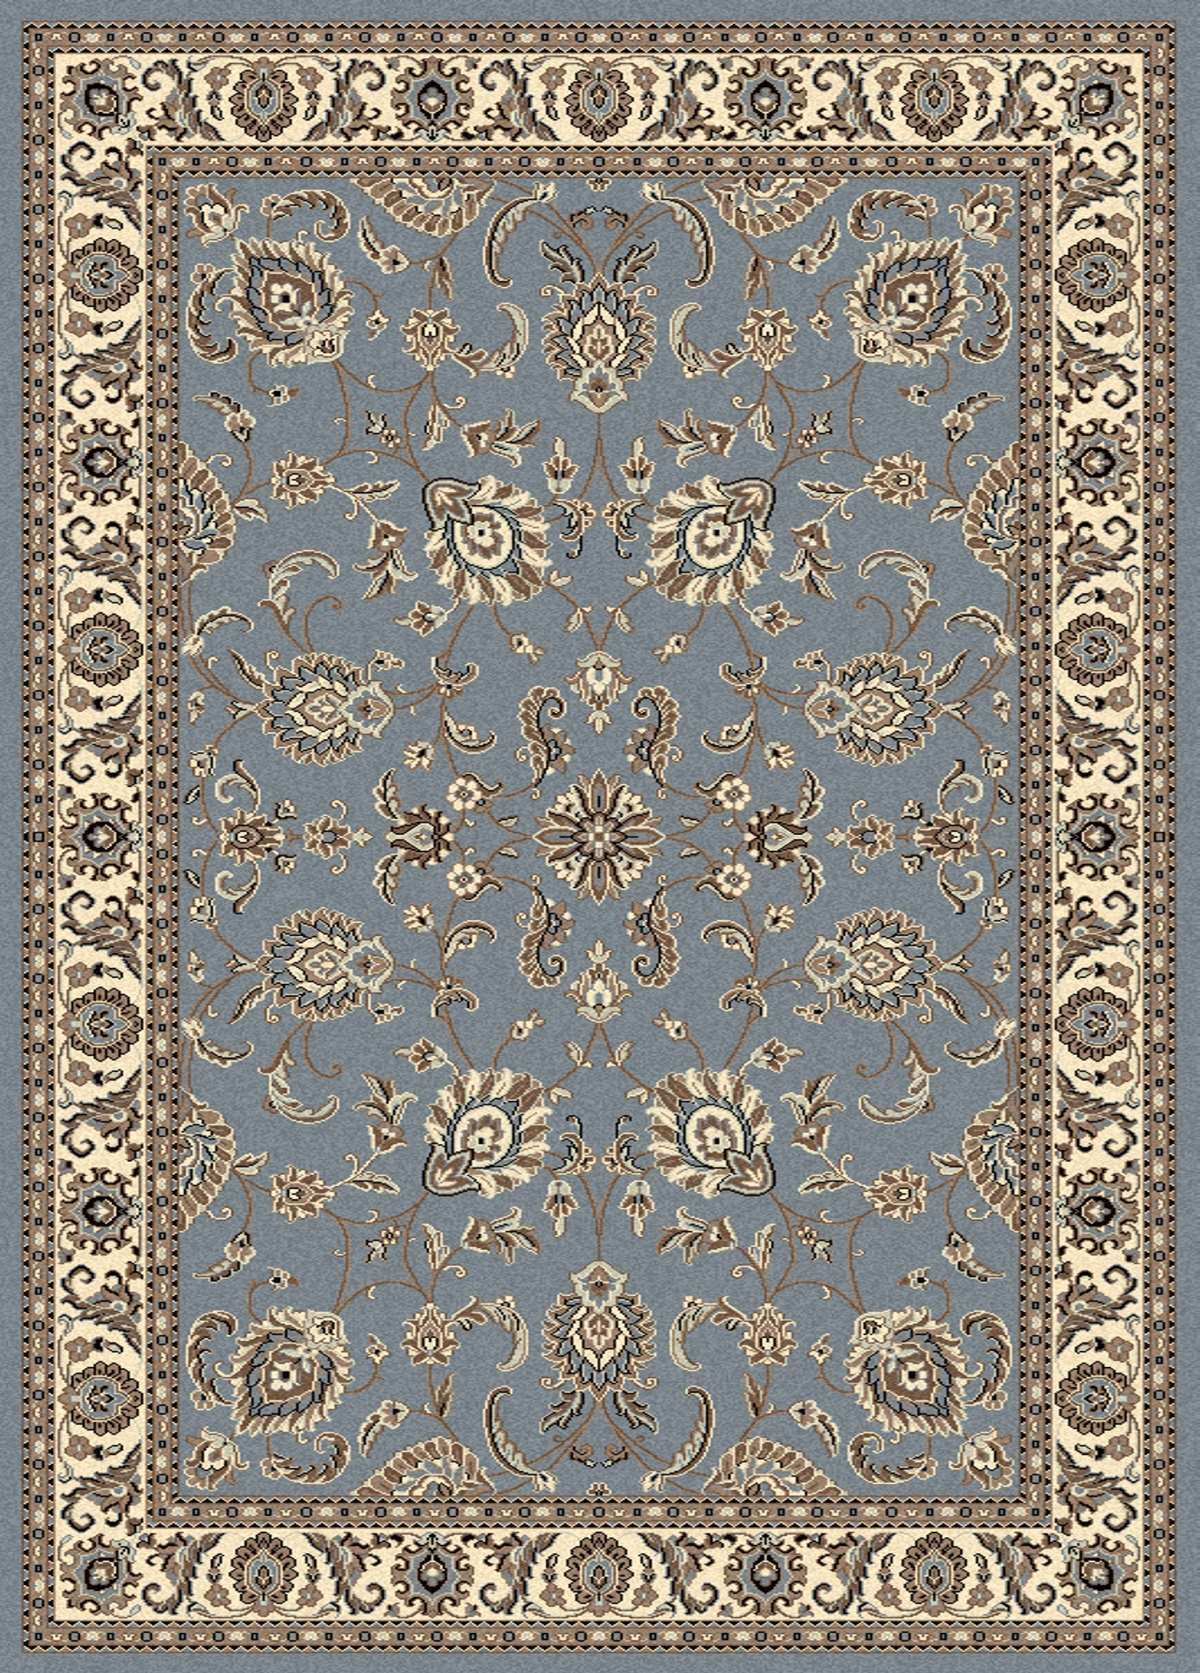 Beautiful Machine Made Area Rugs Made Of Durable And Easy To Clean